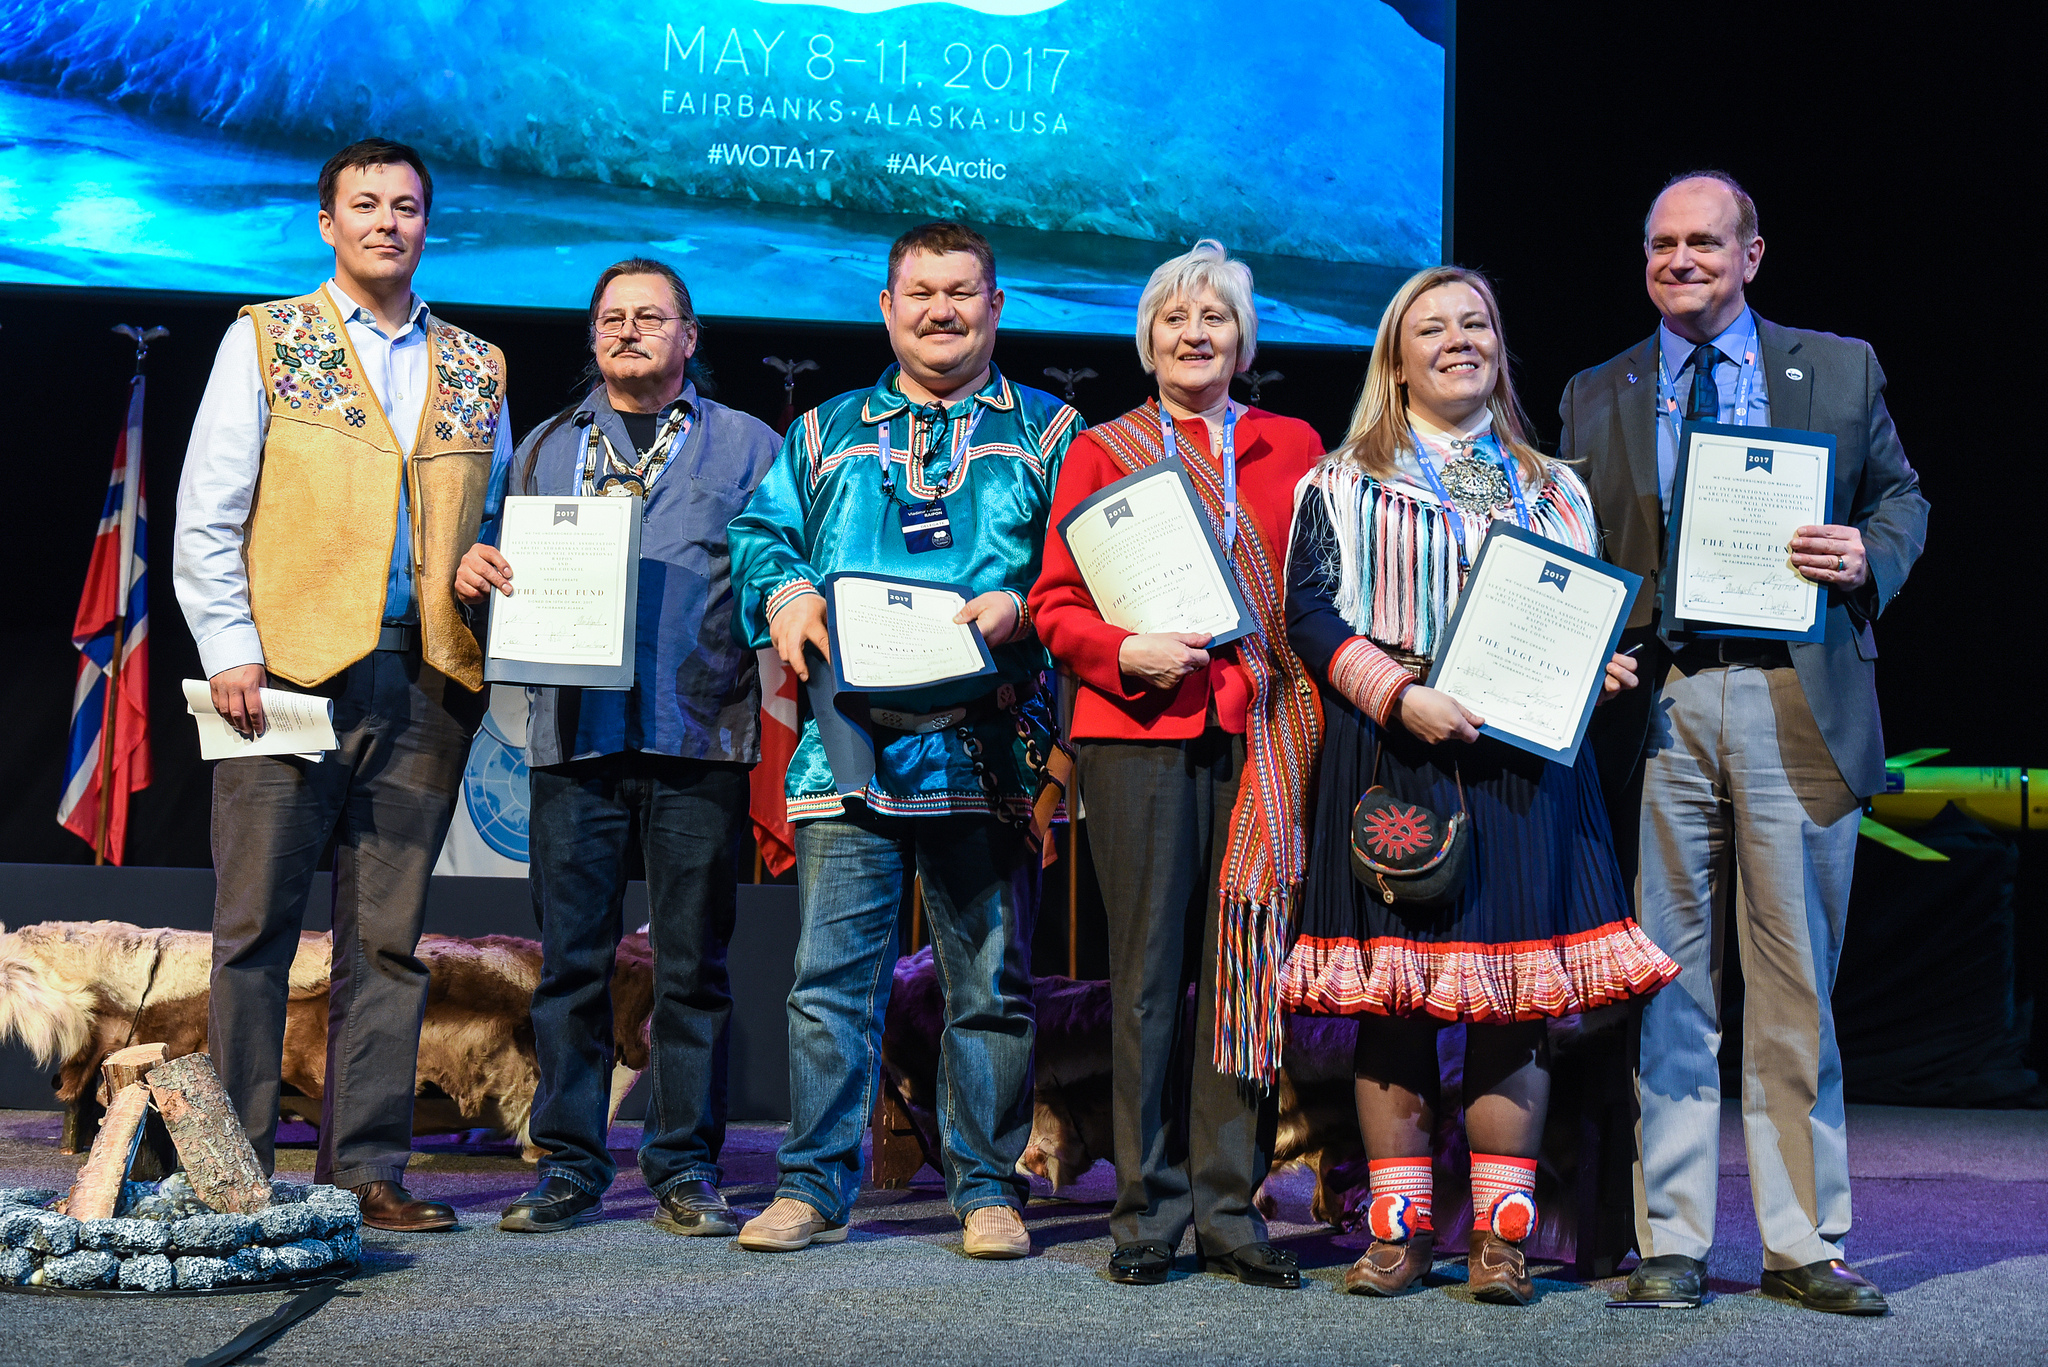 blog-arctic-council-continues-to-defy-pessimism-4